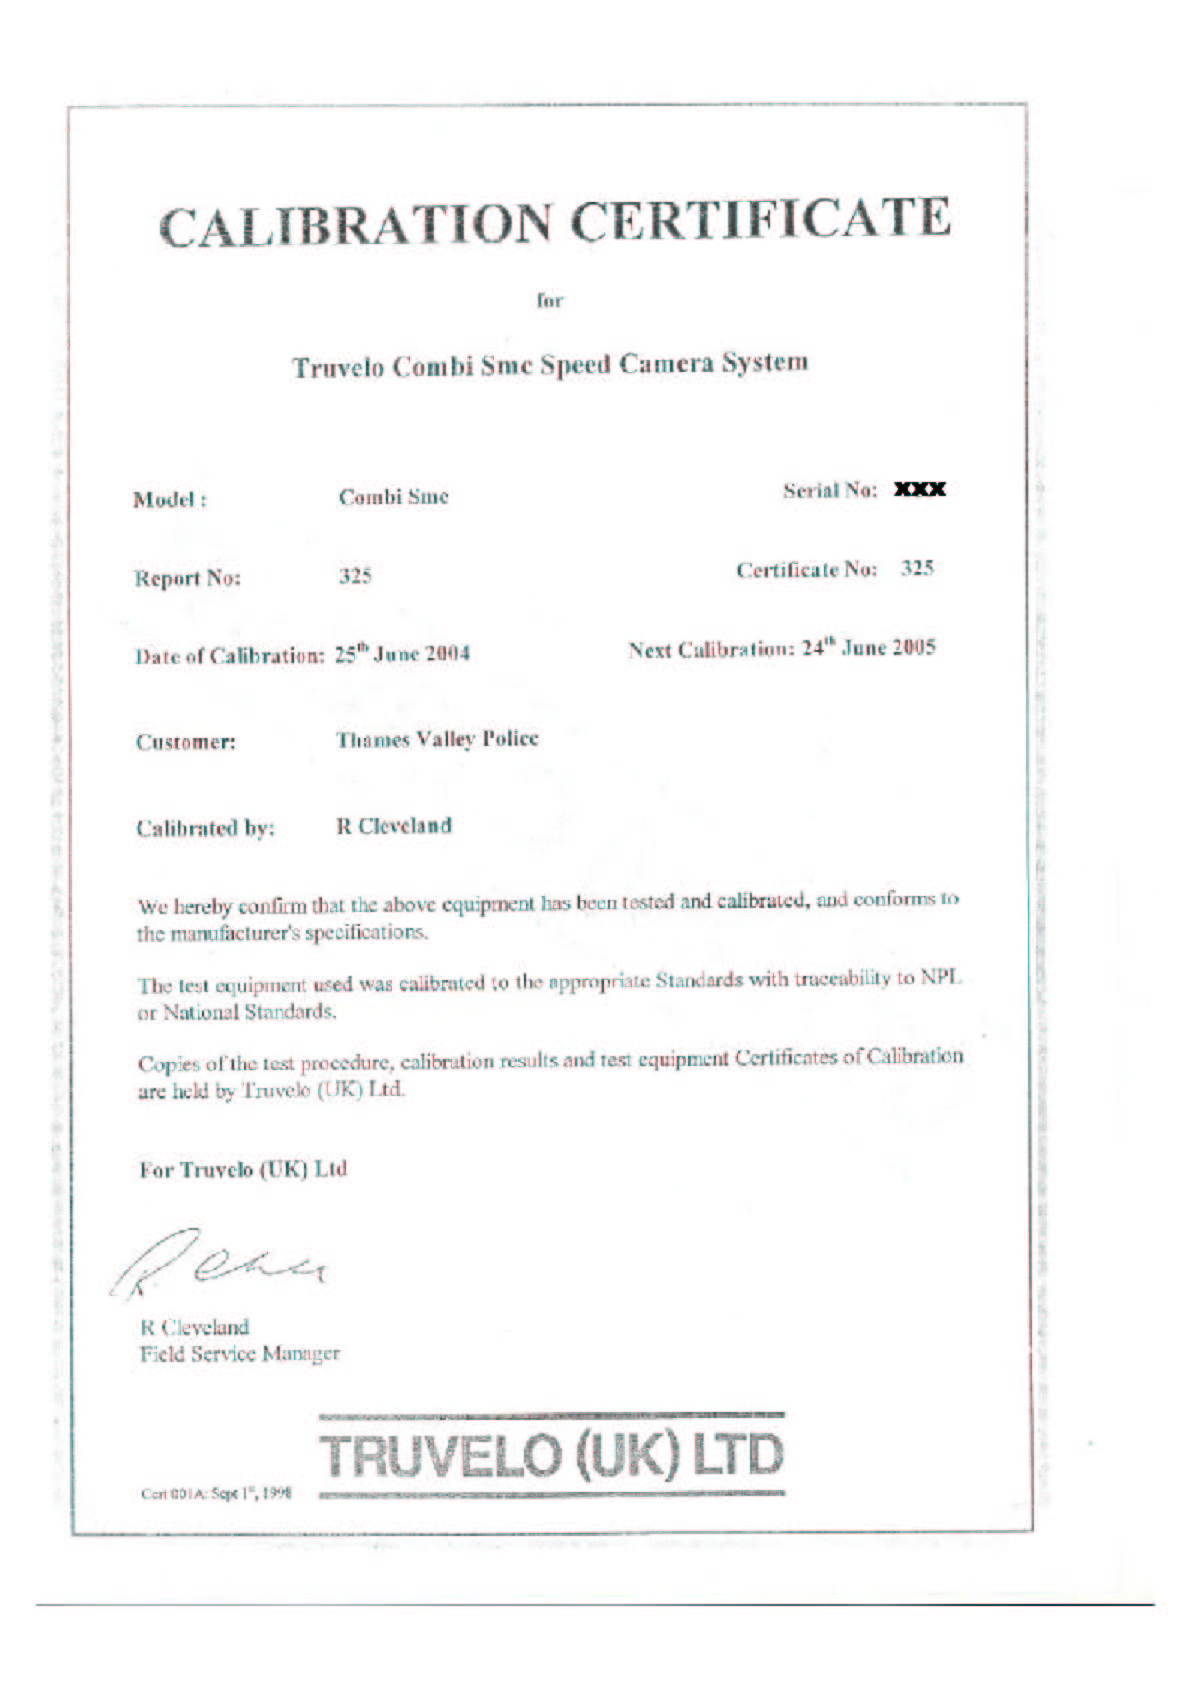 Emergency lighting certificate template images templates example emergency lighting test certificate template telecom network emergency lighting test certificate template emergency lighting test certificate yadclub Choice Image